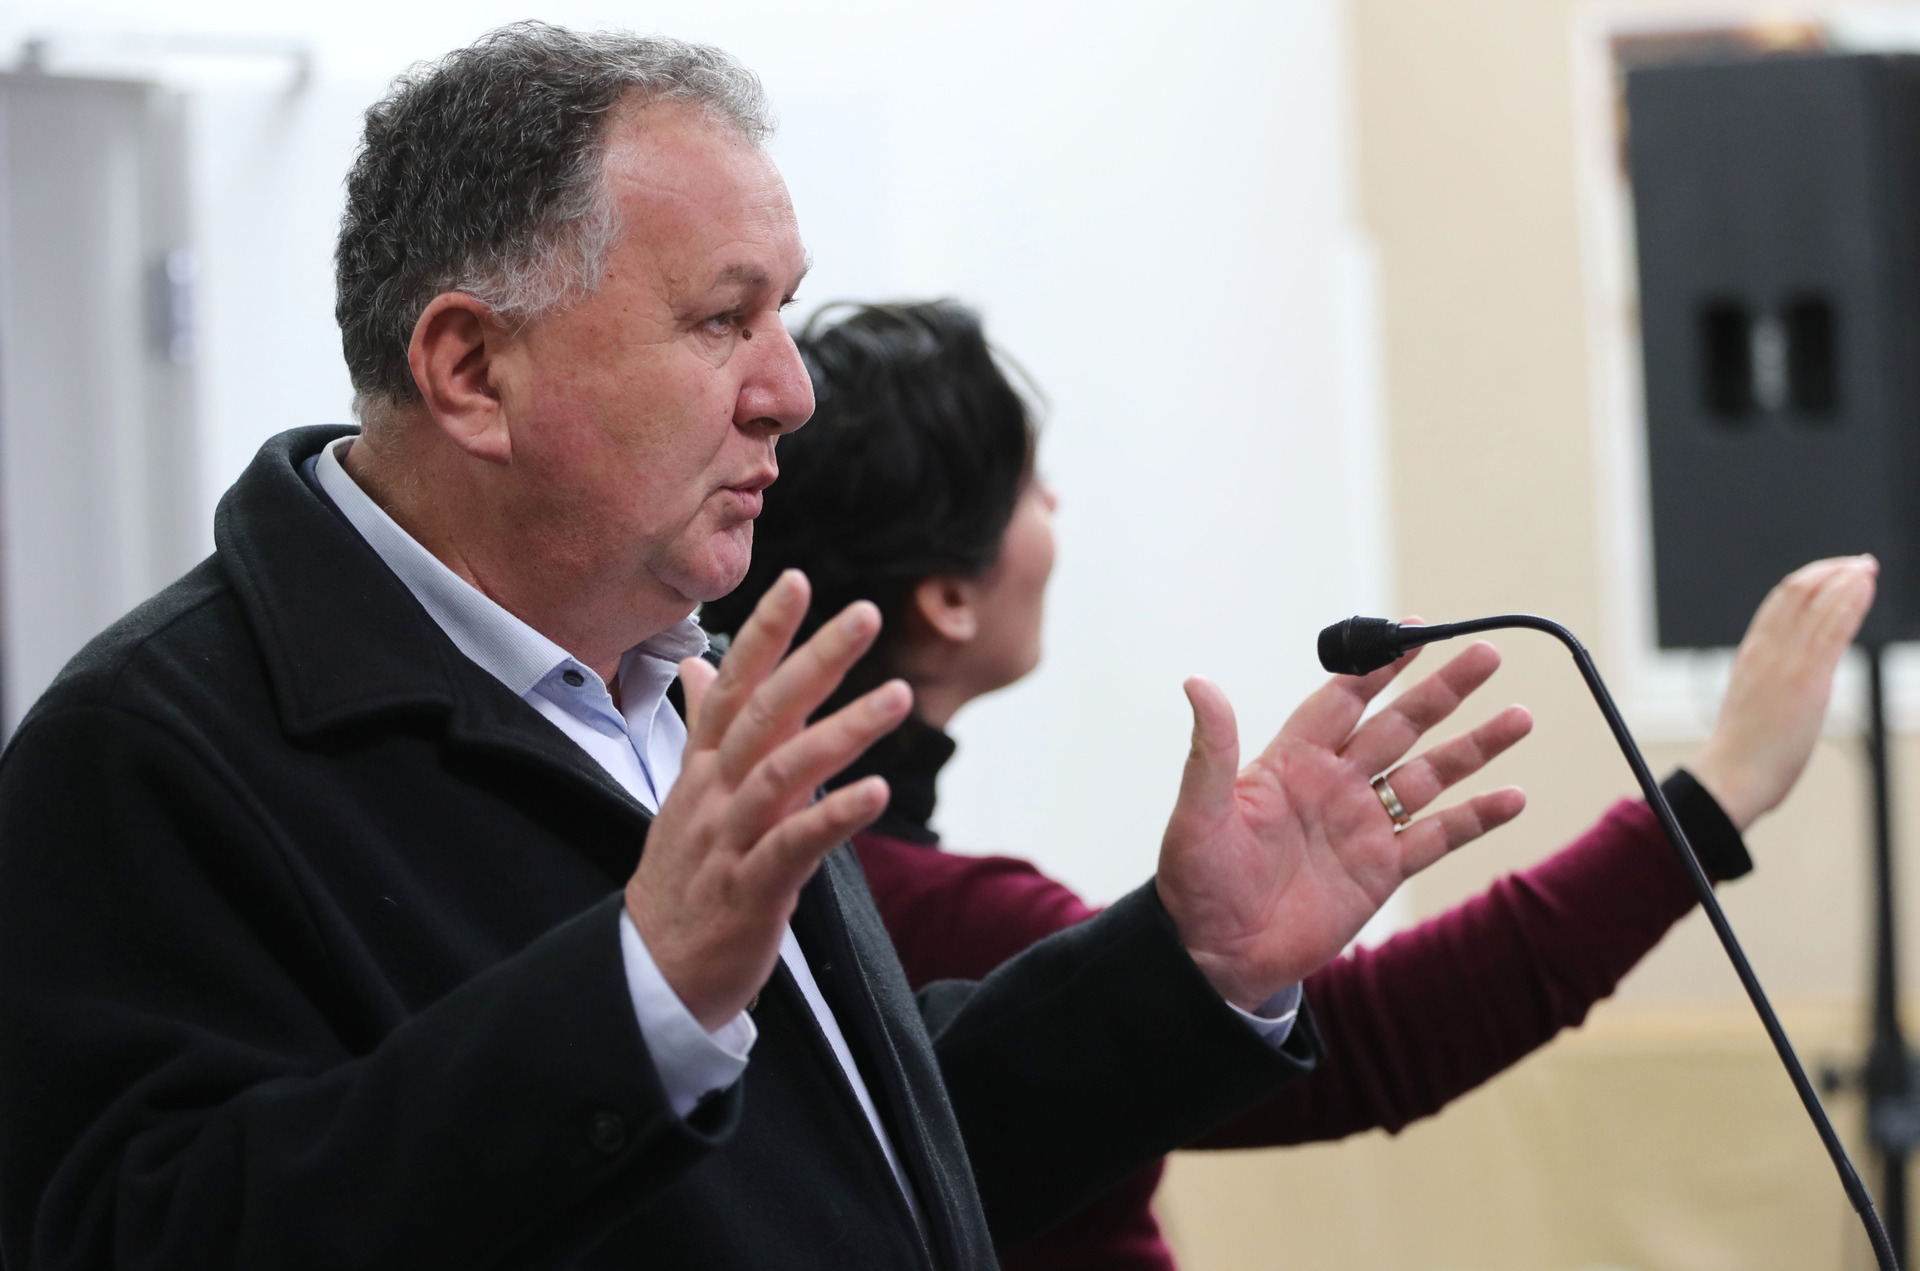 Jones takes aim at 'eco-bible-bashing' climate-change activists